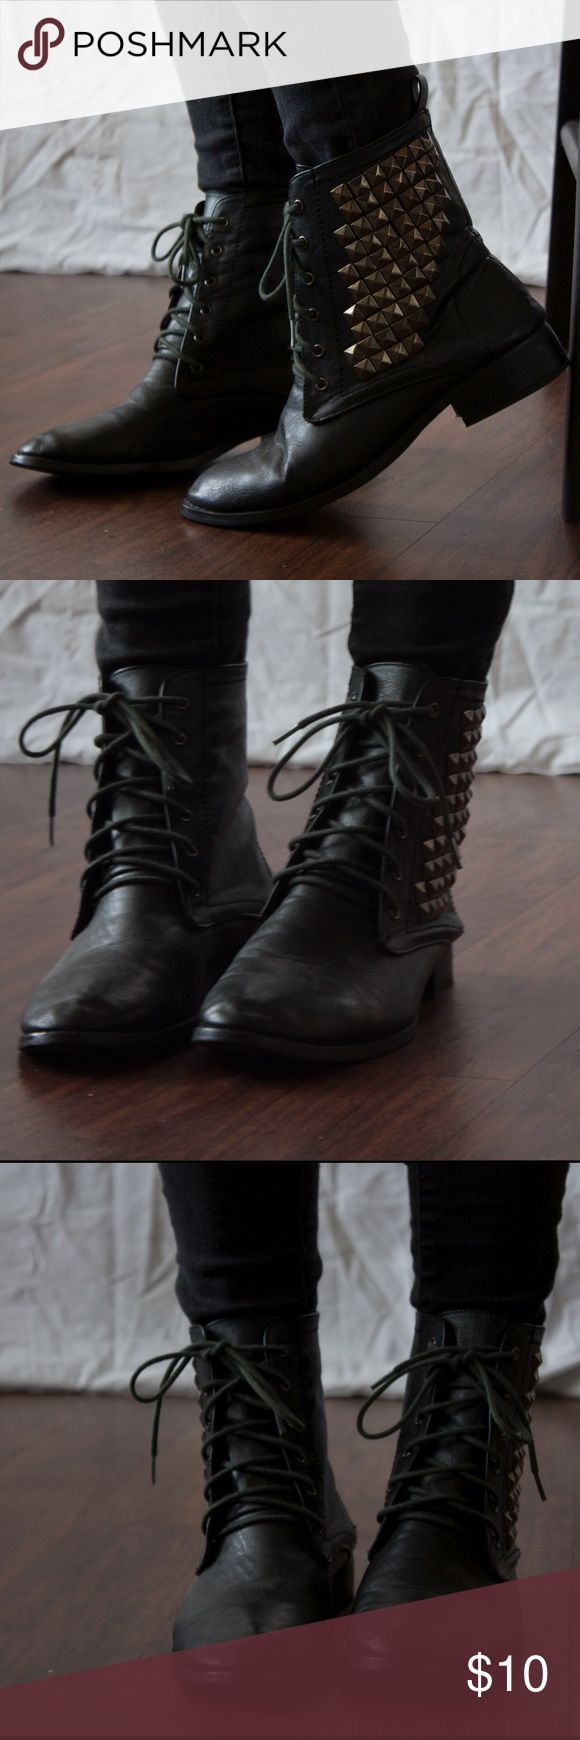 Combat Boots- Studded Studded boots with stud detailing on the side. Laces to tie. Forever 21 Shoes Combat & Moto Boots